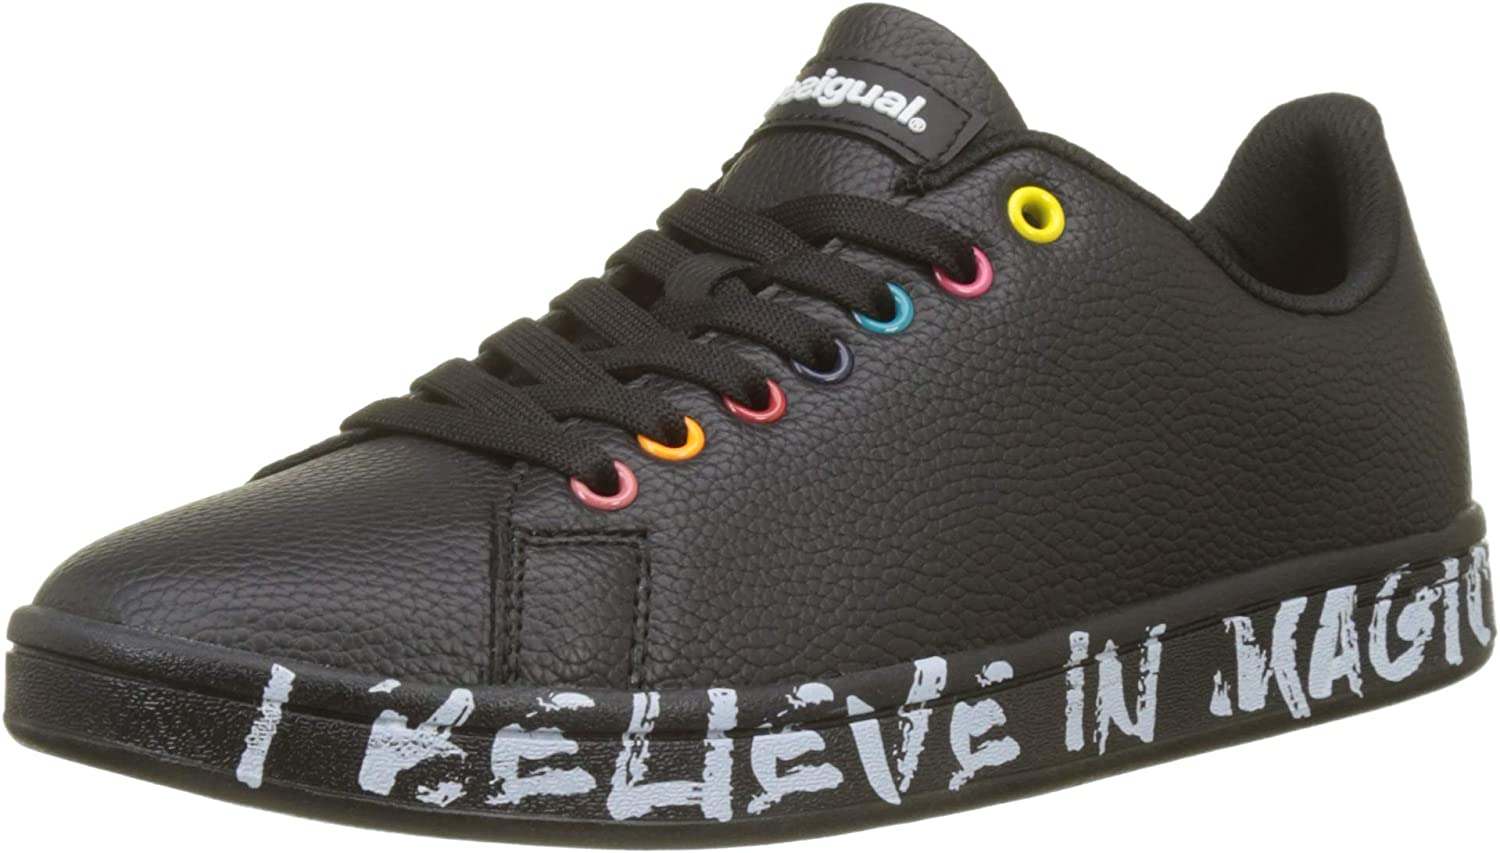 Desigual Women's shoes_Cosmic Candy Low-Top Sneakers